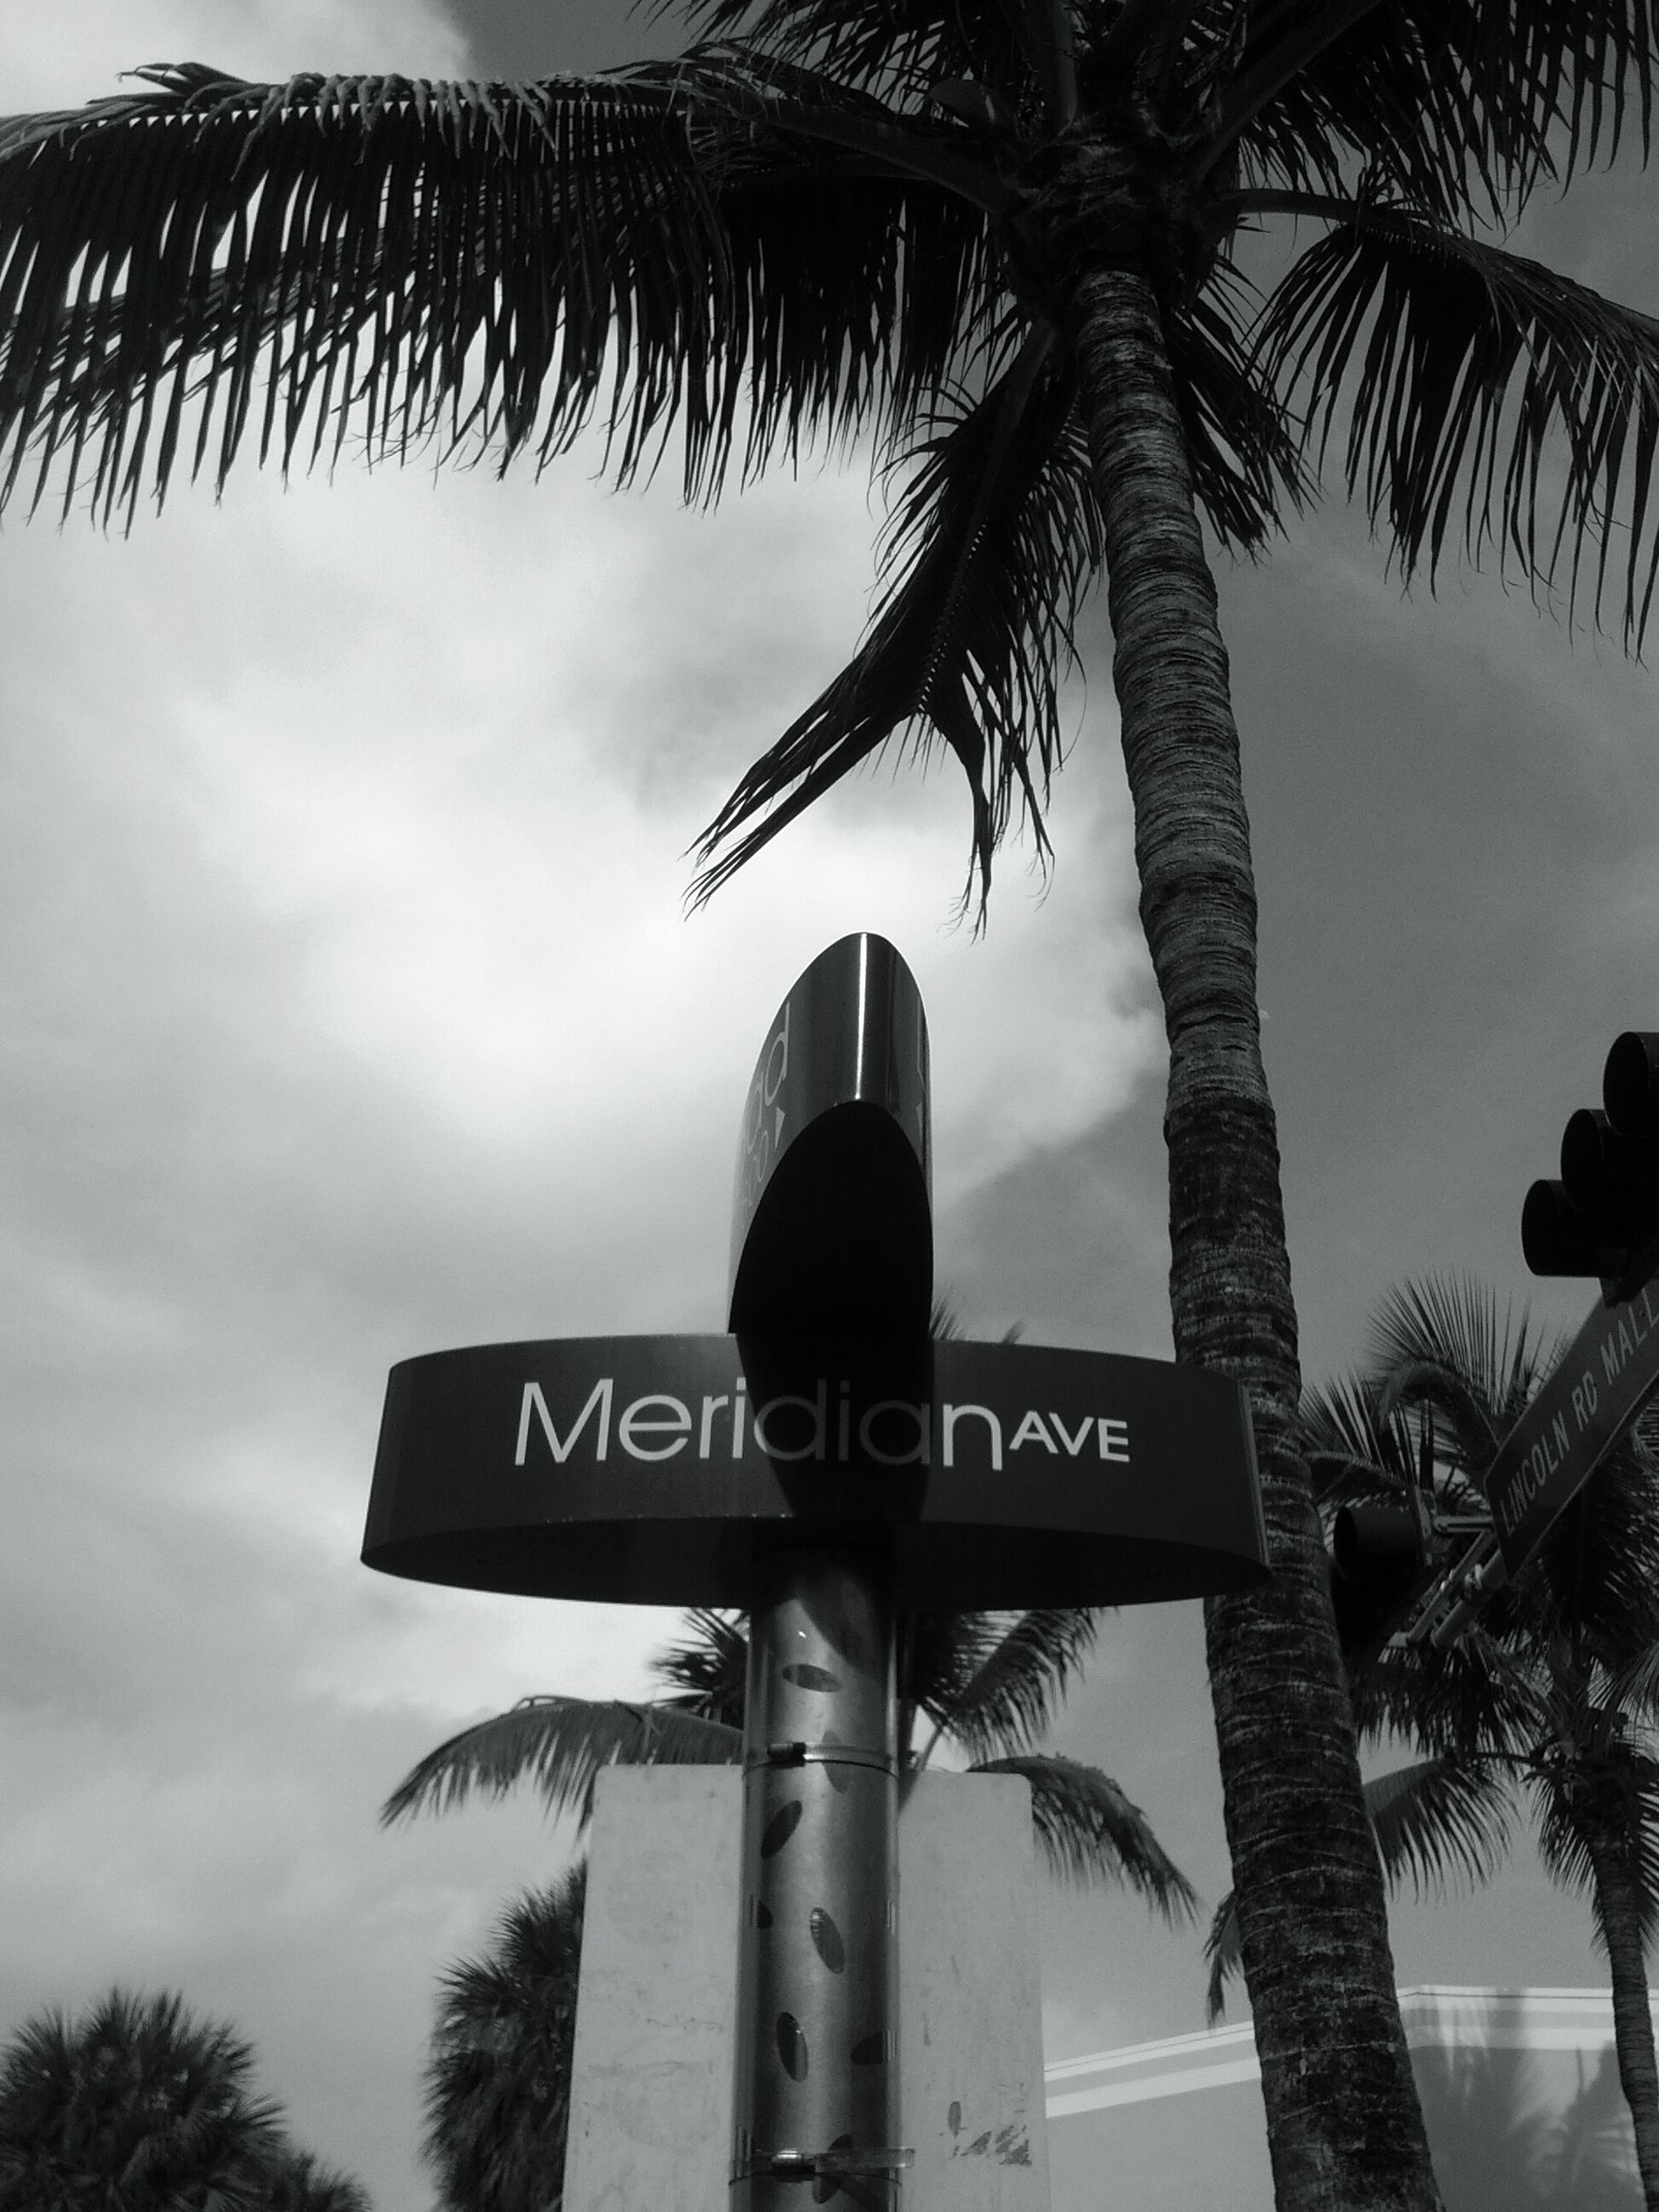 low angle view, tree, palm tree, text, western script, sky, communication, tree trunk, information sign, road sign, sign, guidance, information, directional sign, built structure, no people, silhouette, outdoors, cloud - sky, growth